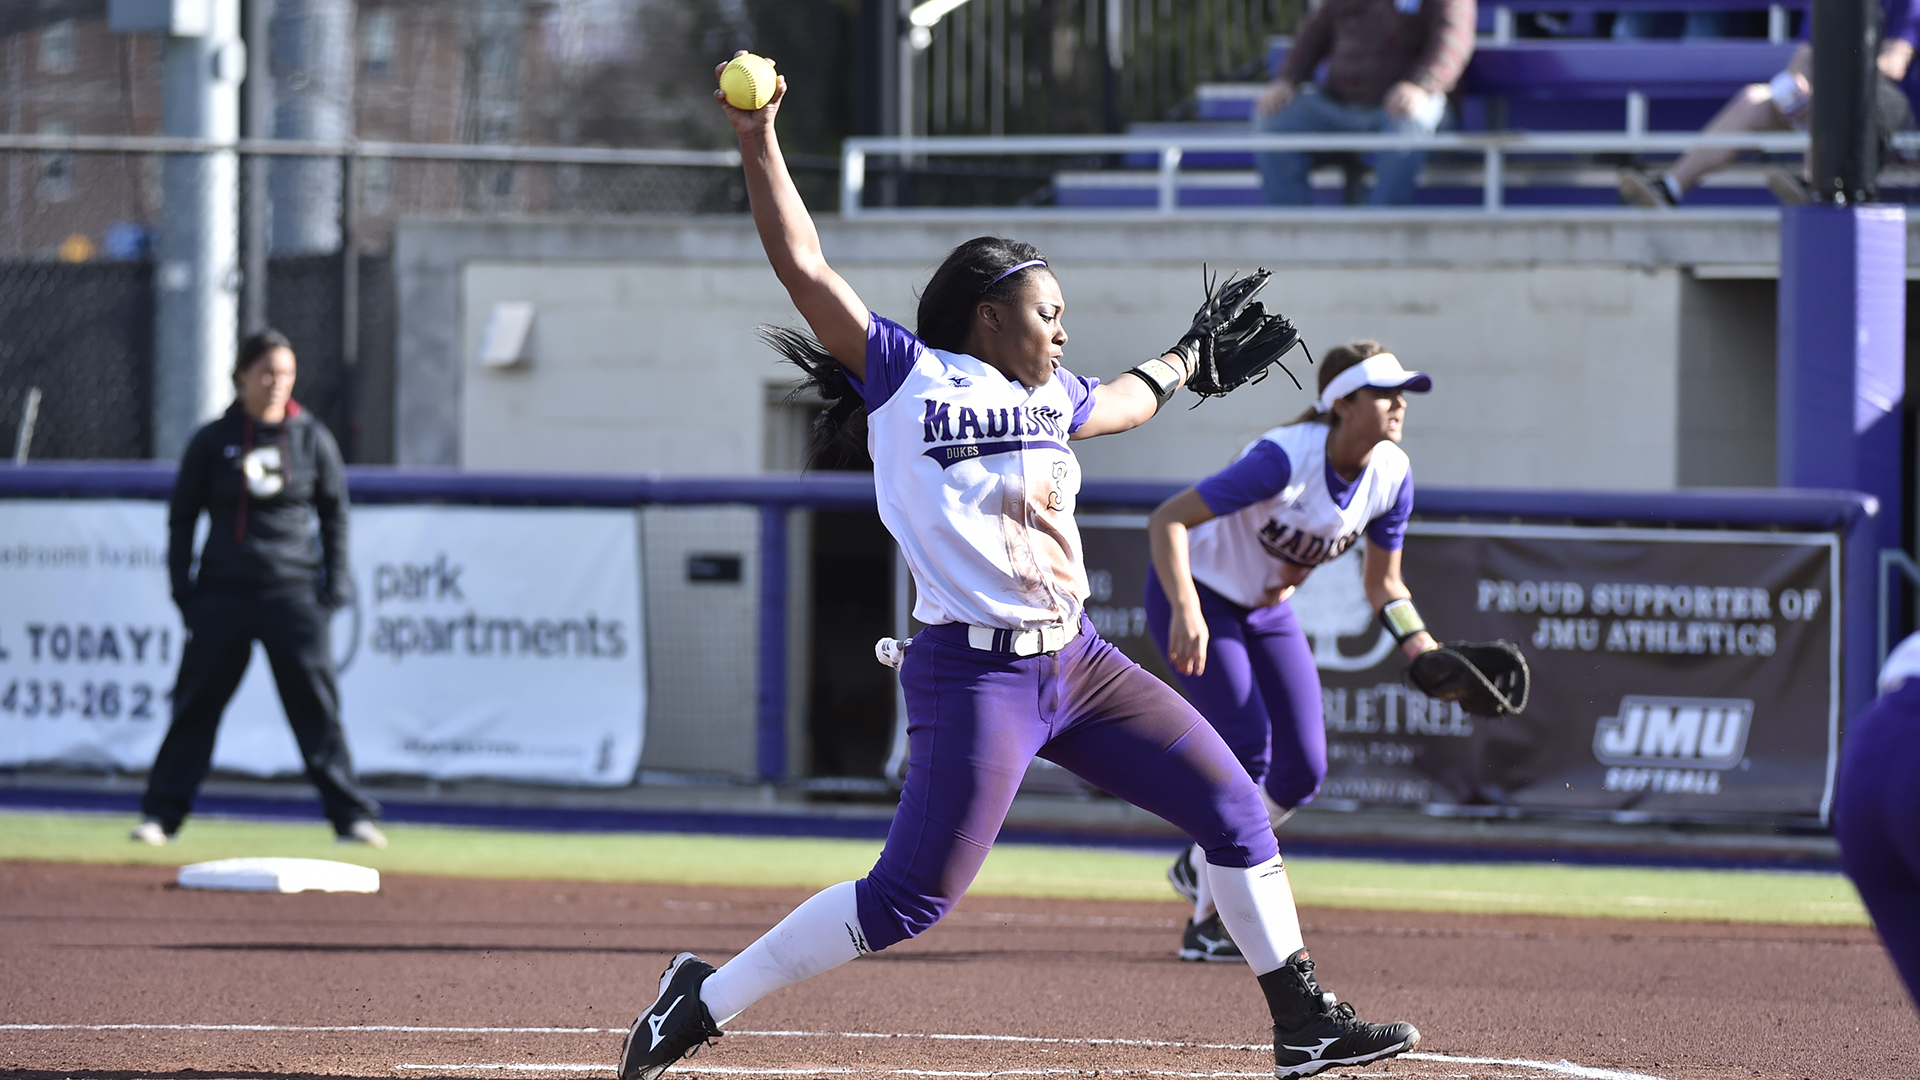 Softball: Powerful Offense Sends JMU Past Morehead State, Campbell)